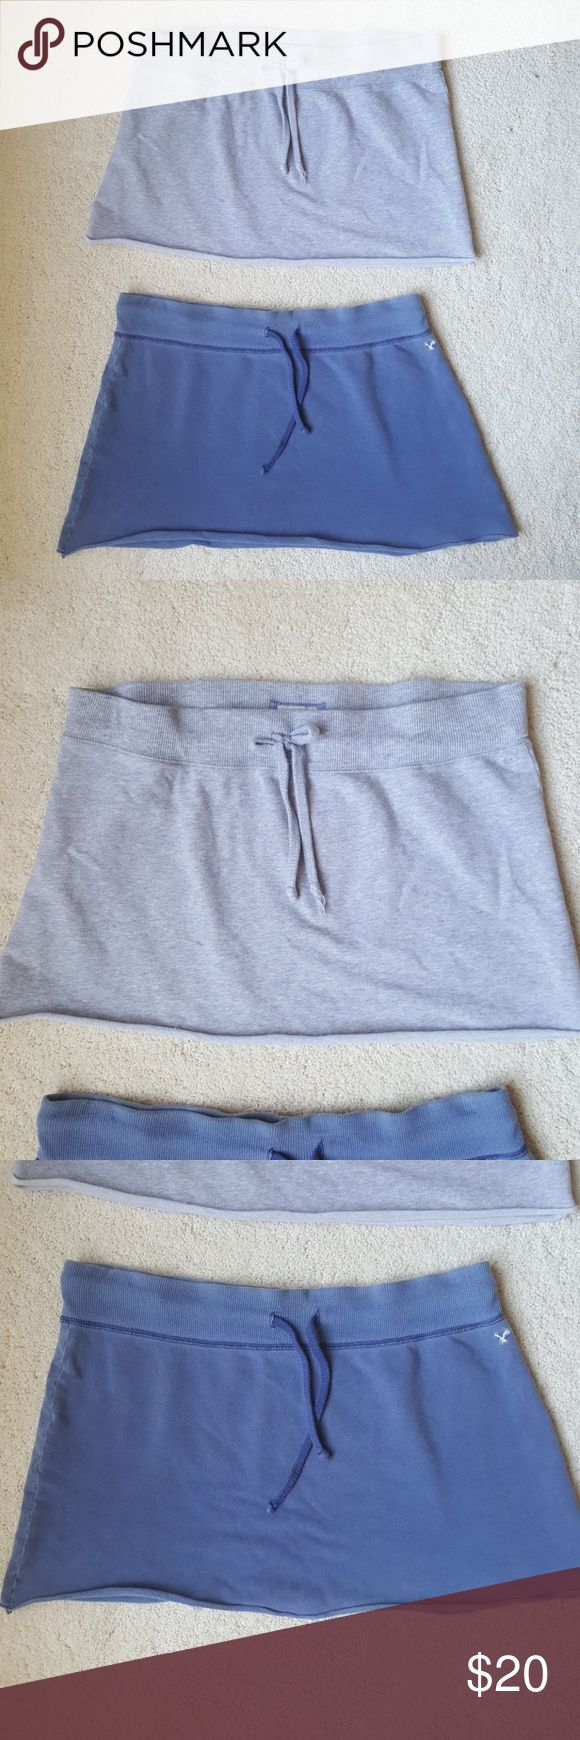 AEO • 2-for-1 lounge athleisure skirts size S / drawstring waists / comfy cotton / wear lounging around at home, studying or reading your iPad, playing tennis, to bed, anywhere!  from smoke and pet free home American Eagle Outfitters Skirts